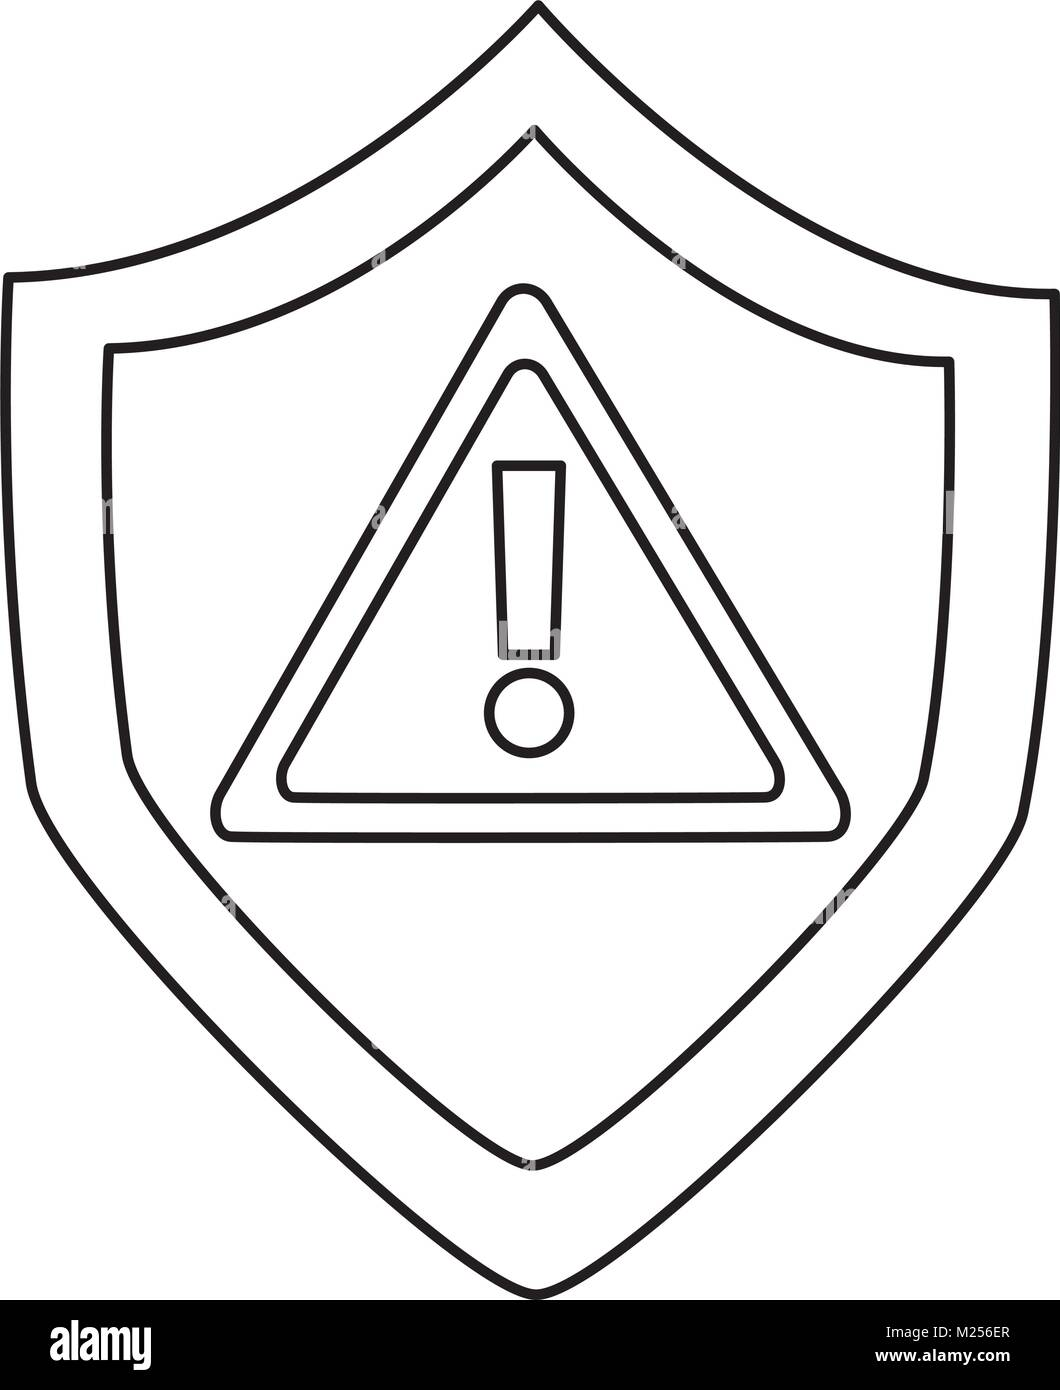 antivirus shield icon image  - Stock Image